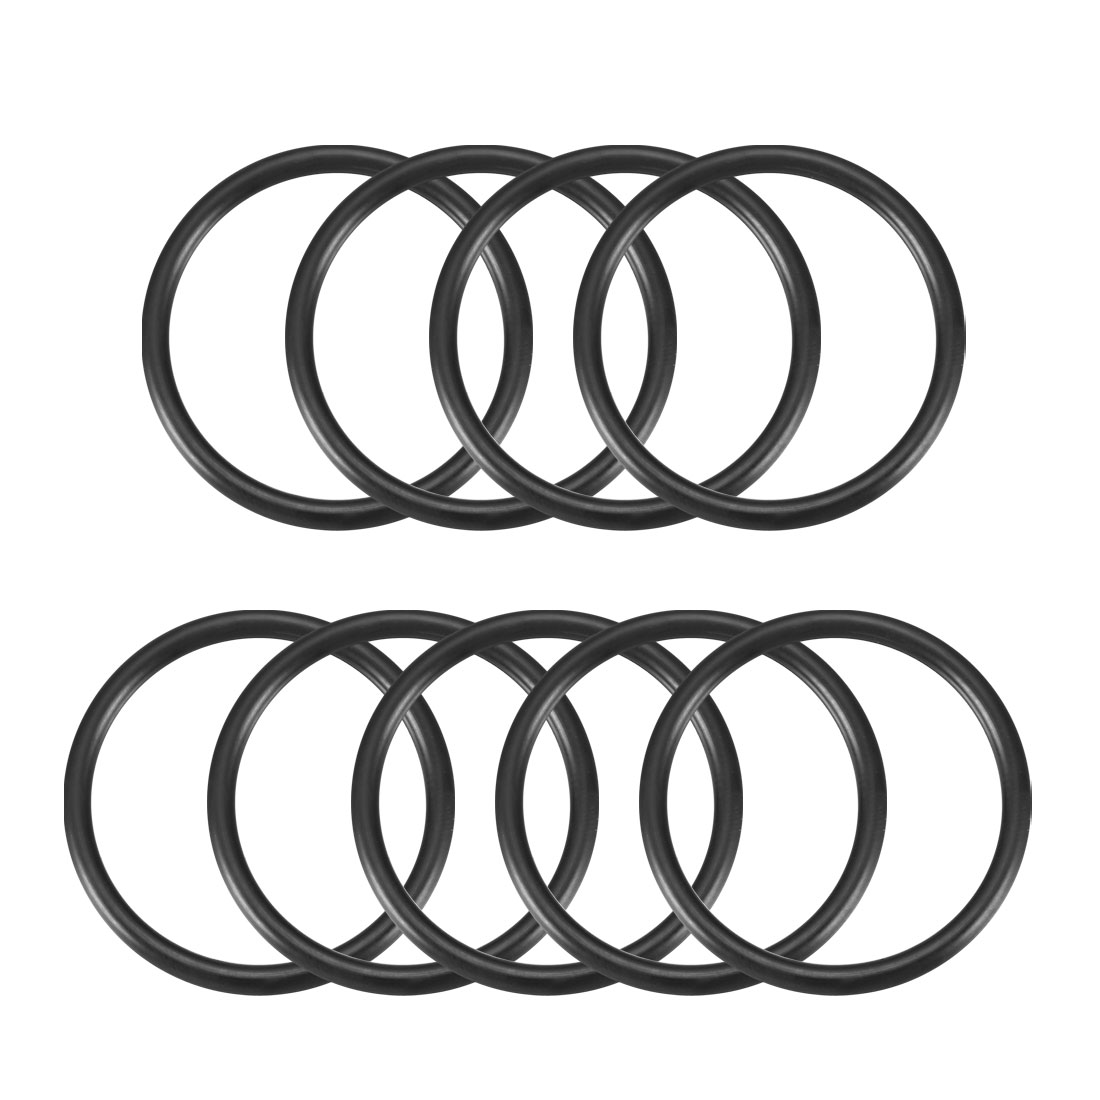 Rubber 39mm x 33mm x 3mm Oil Seal O Rings Gaskets Washers Black 9 Pcs